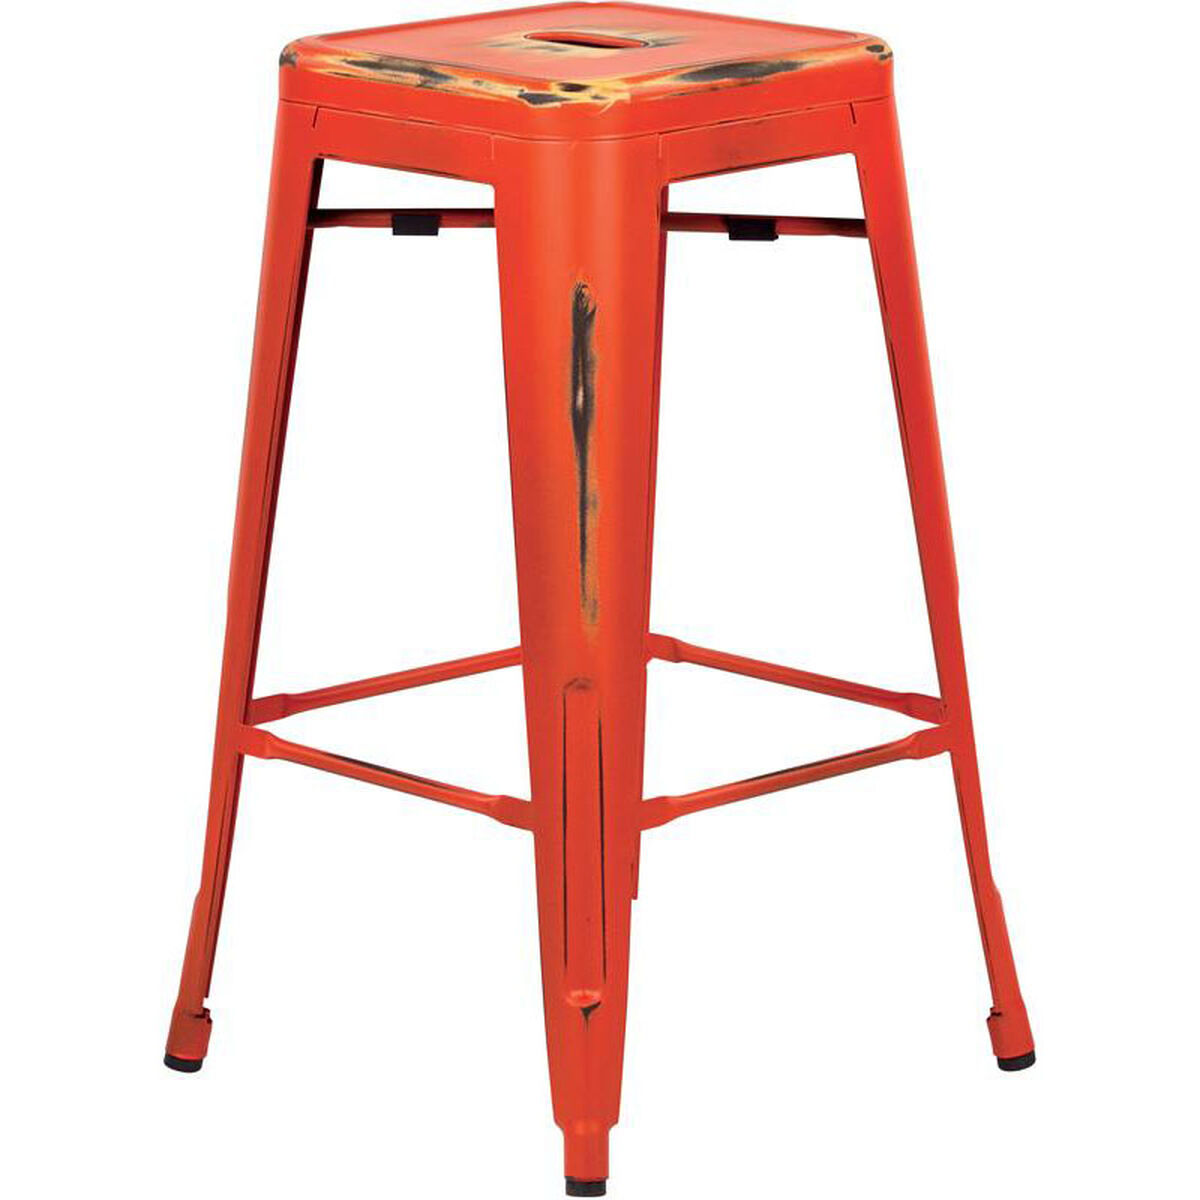 Set Of 4 Orange Metal Barstool Brw3026a4 Aor Stackchairs4lesscom